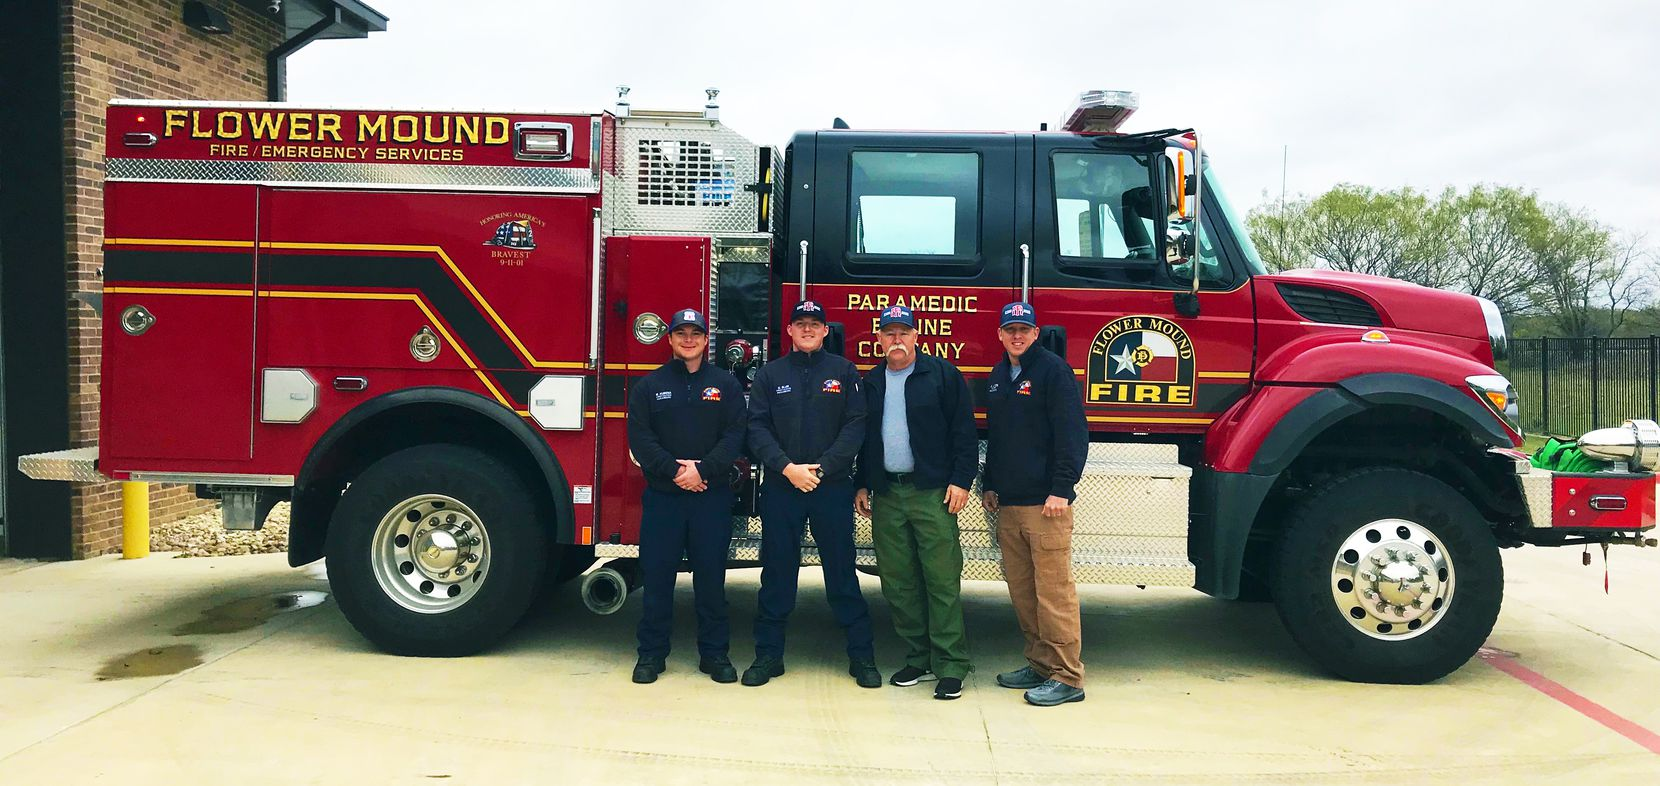 Flower Mound Fire Department sent five firefighters and a vehicle to California to help battle the Woosley fire.